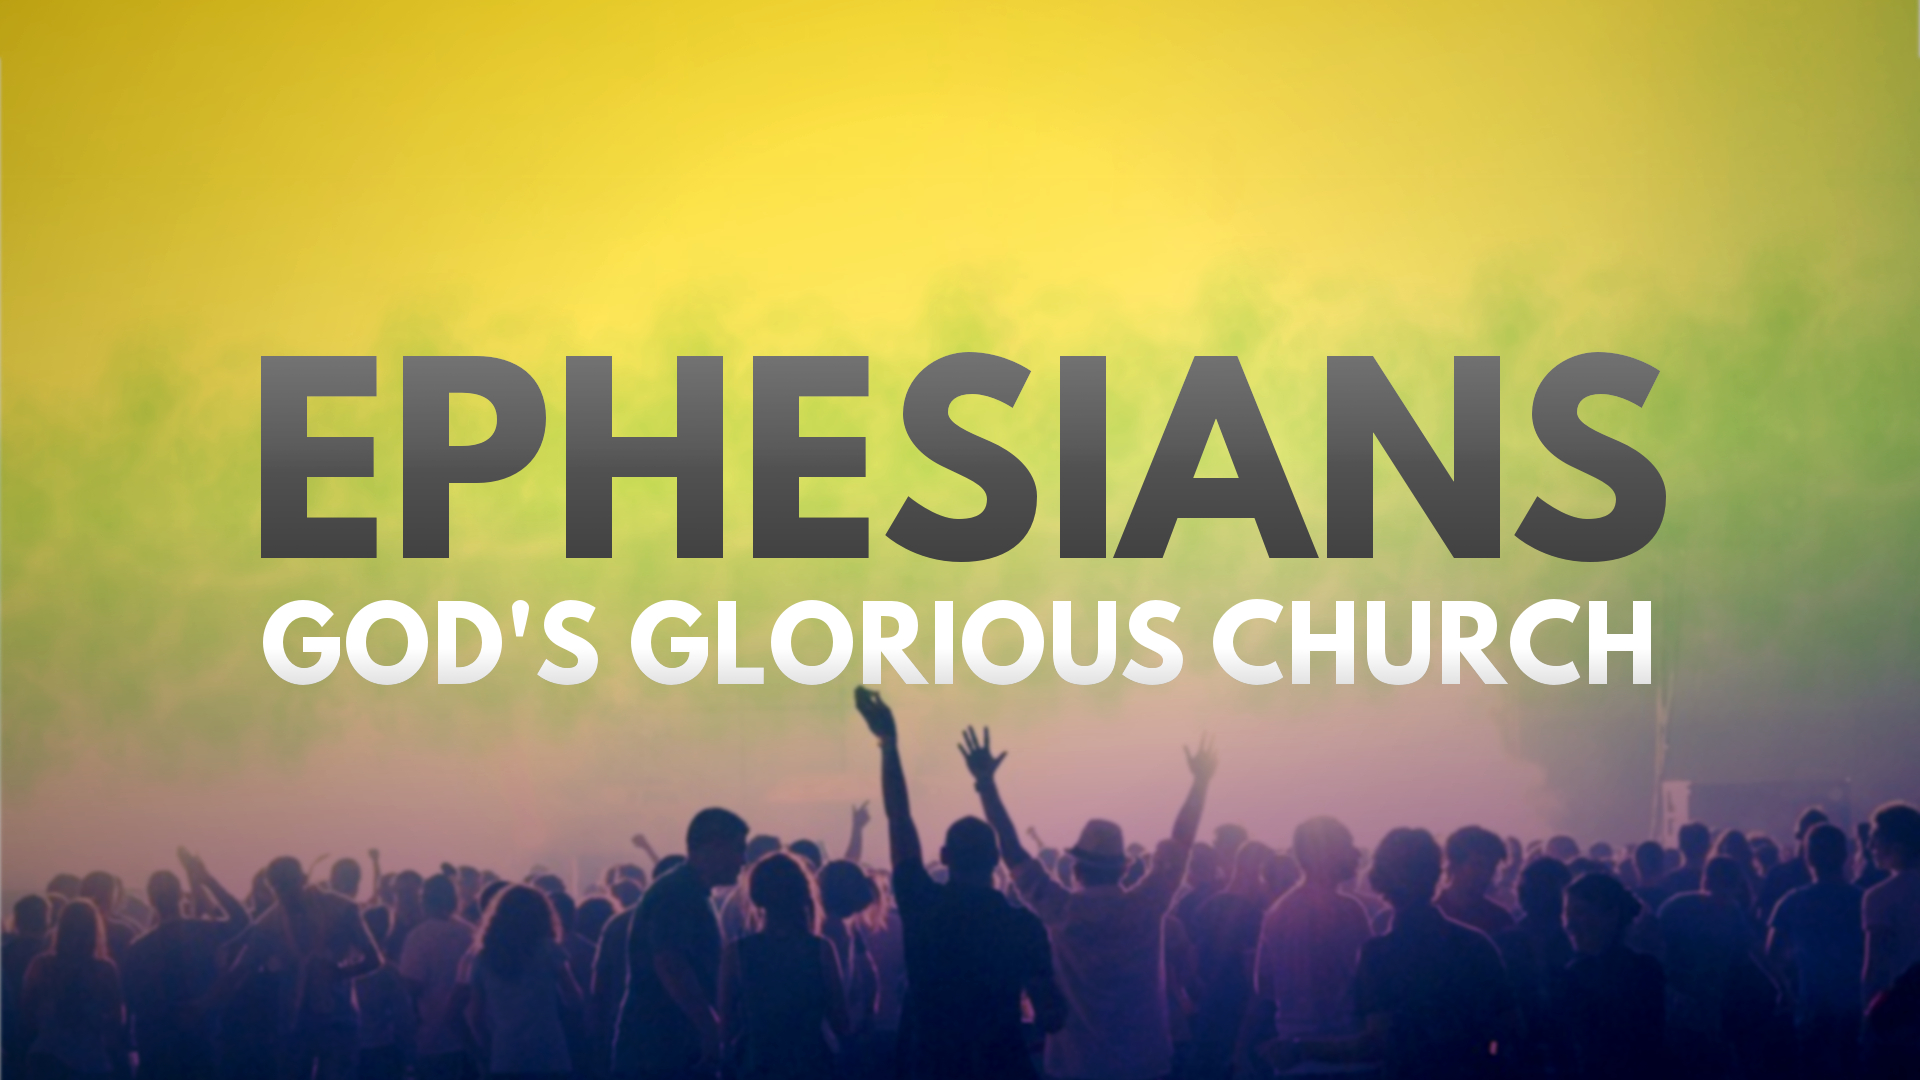 Ephesians 5:3-20 | Living as Children of Light